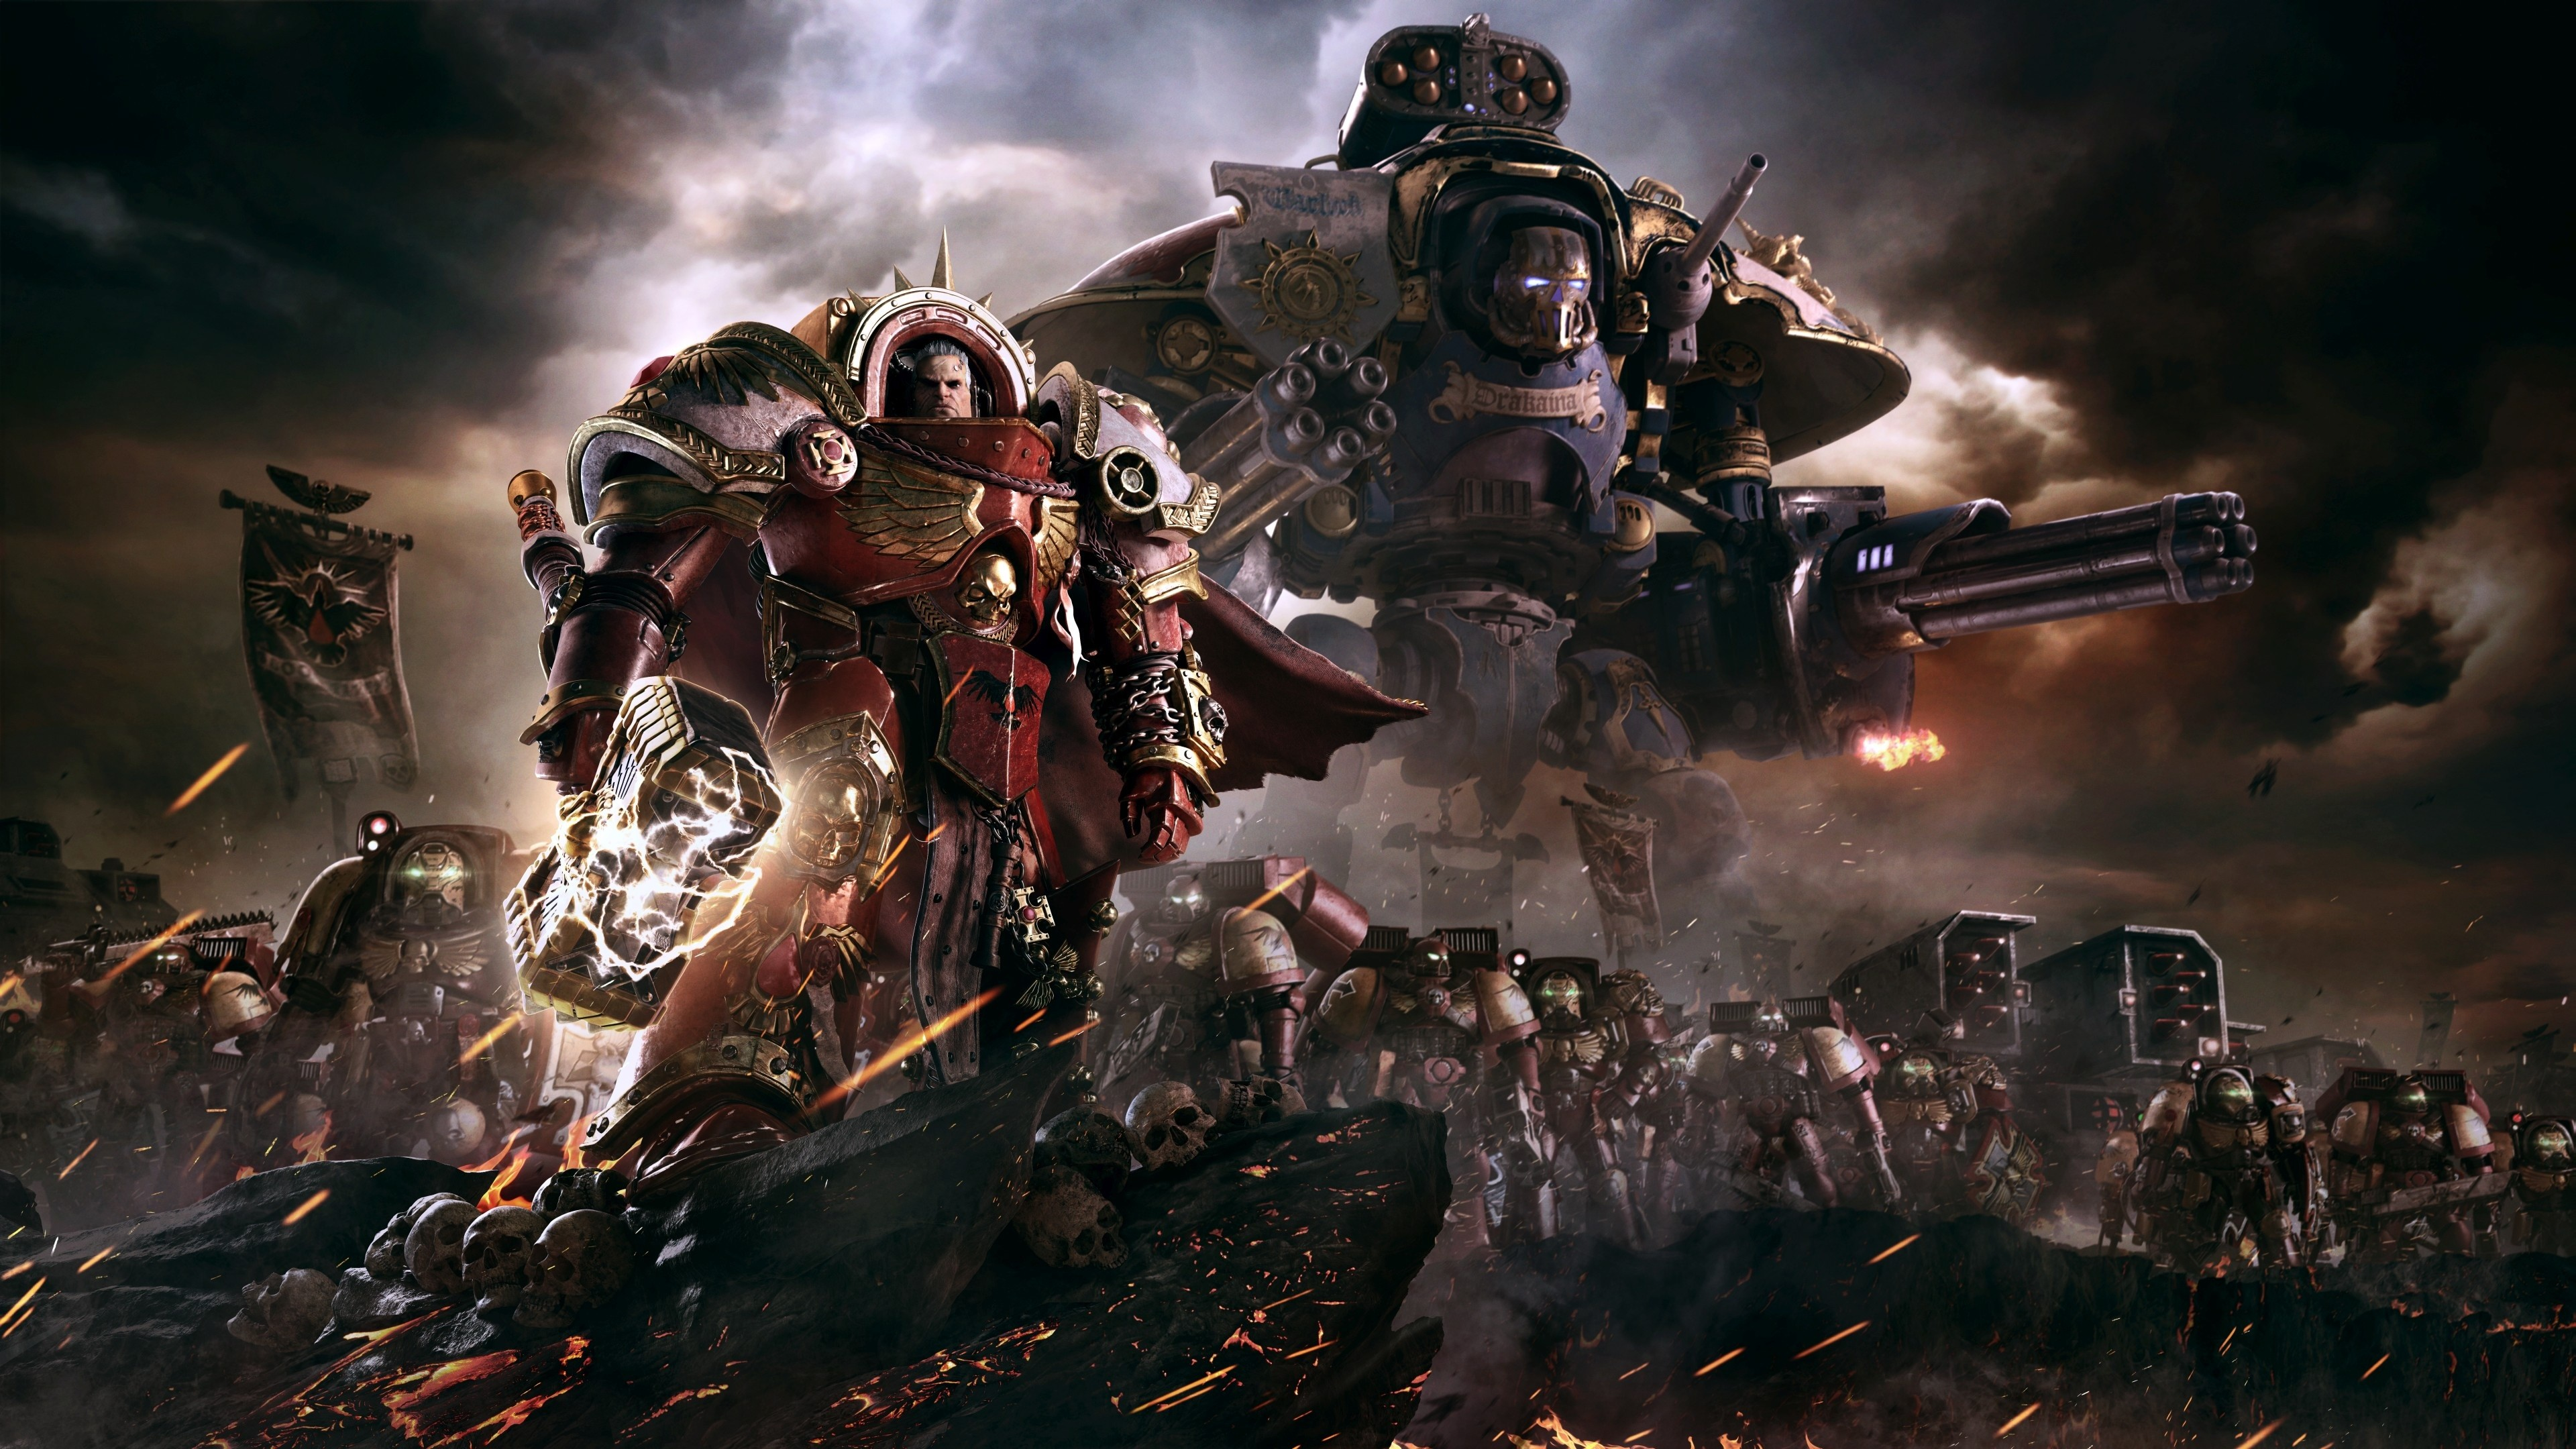 3840x2160 Warhammer 40K Dawn of War III 4K